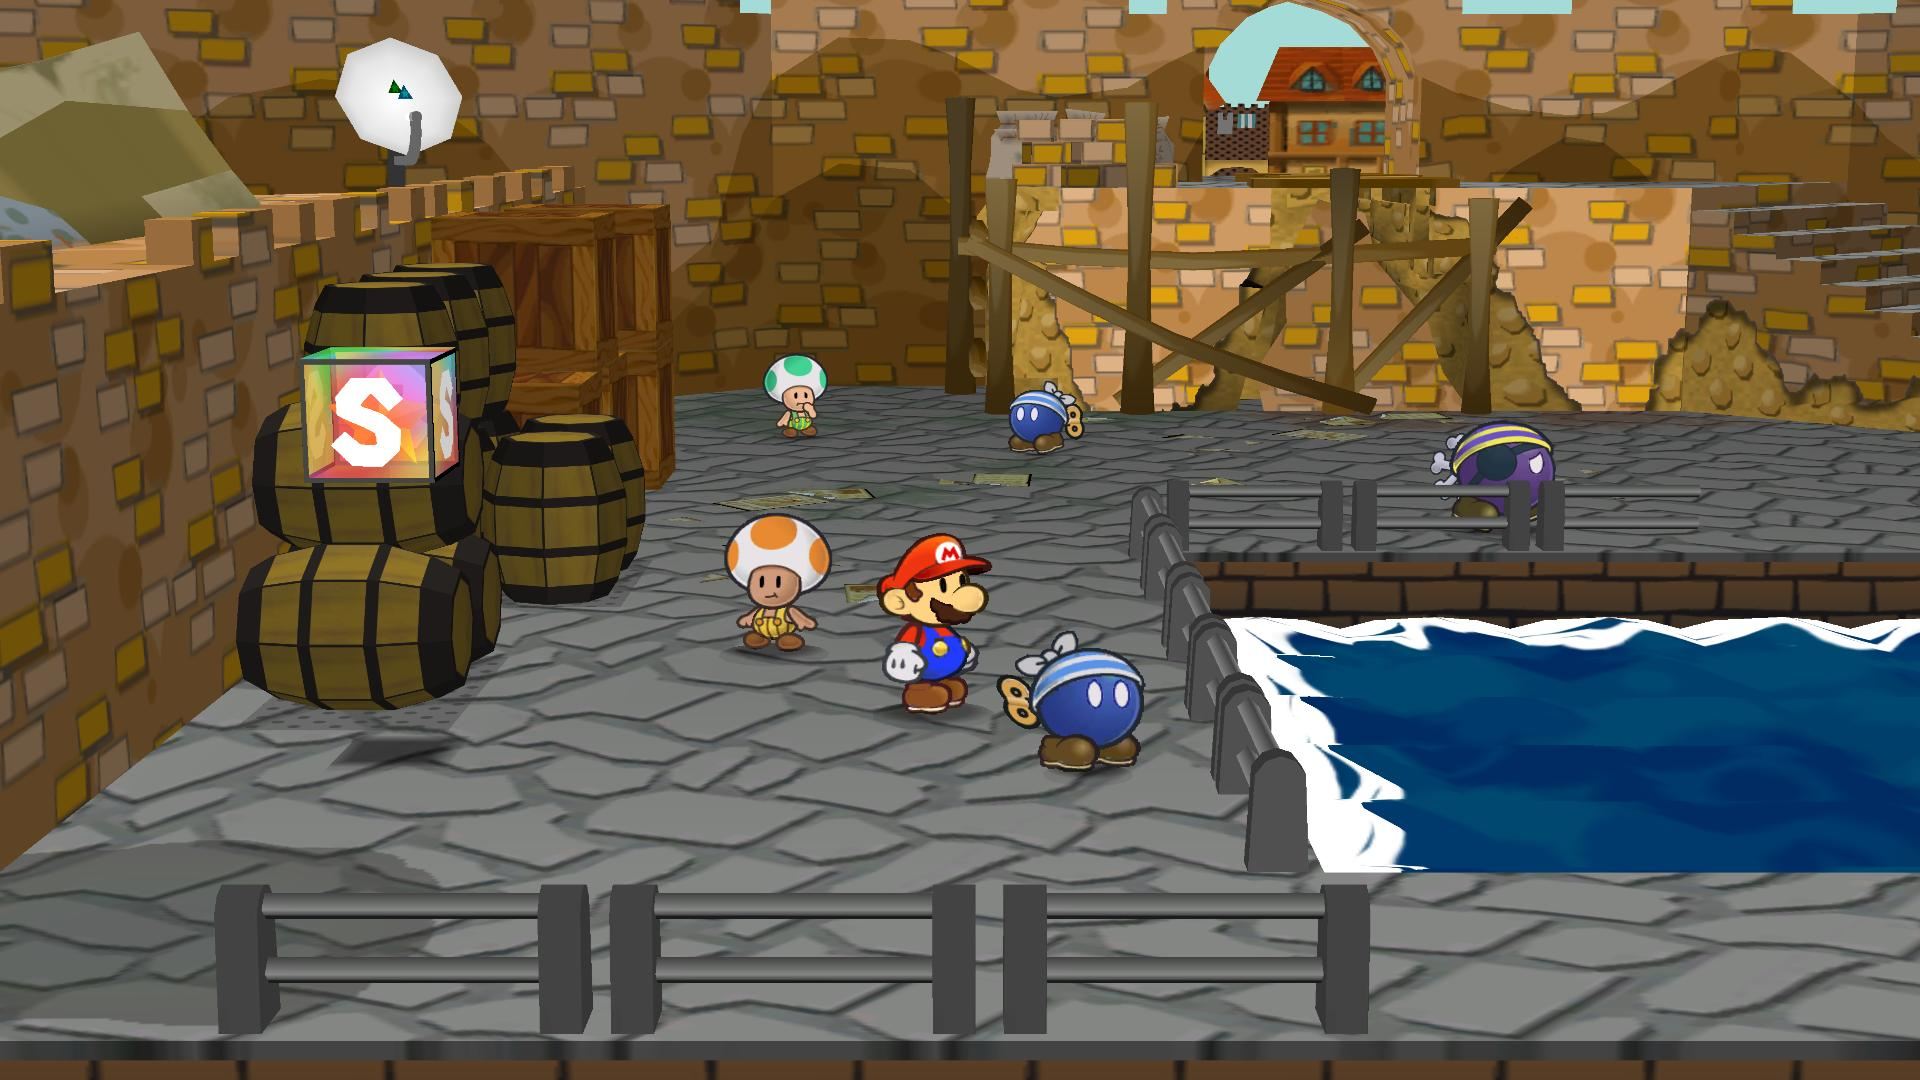 Beyond Pen and Paper: Top 3 Paper Mario games | Goomba Stomp